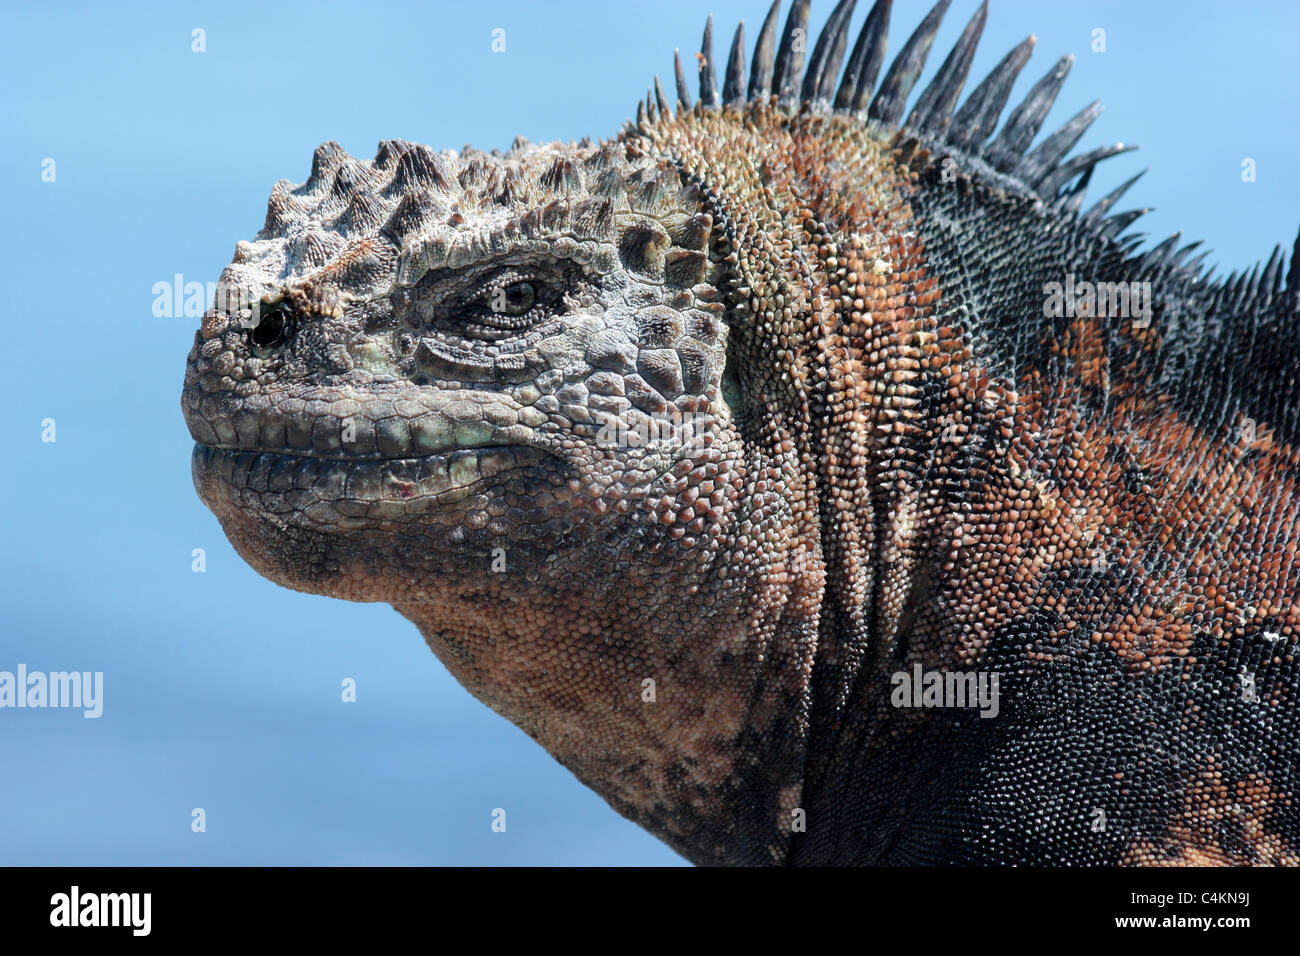 Semi urbanized Marine Iguana in Puerto Ayora harbour; Santa Cruz, Galapagos Islands, Ecuador. - Stock Image